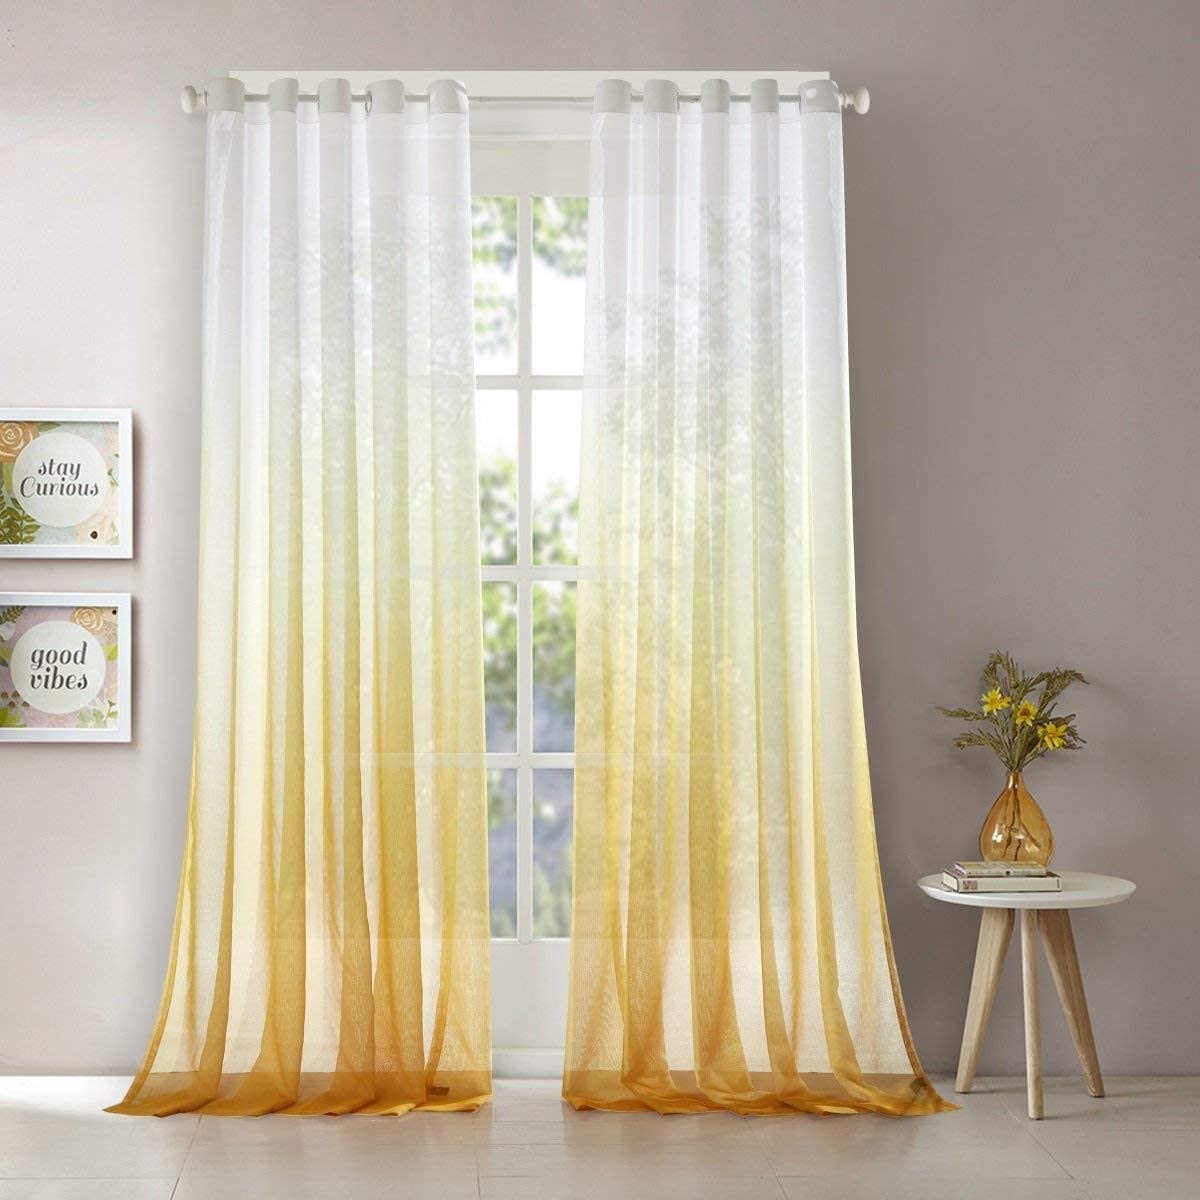 IYUEGO Gradient Ombre Sheer Curtains Curtains Rob Pocket Curtains for Living Room Draperies with Multi Size Custom 72 W x 102 L Five Panels